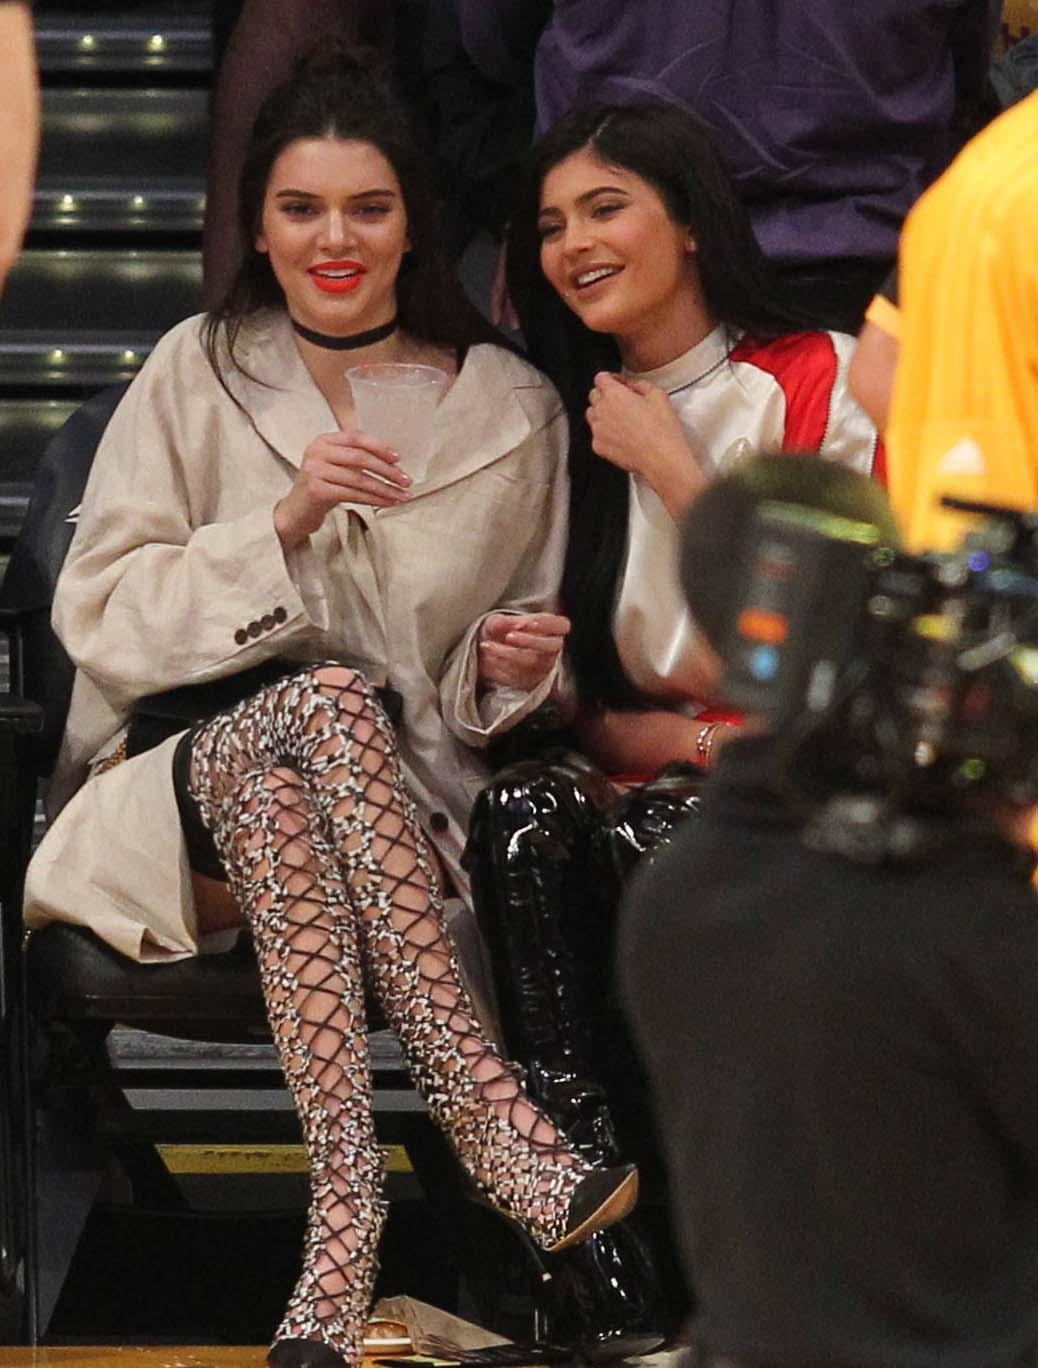 Tuesday March 15, 2016; Kendall and Kylie Jenner out at the Lakers game. THe Sacramento Kings defeated the Los Angeles Lakers by the final score of 106-98 at Staples Center in downtown Los Angeles, CA. Pictured: Kendall and Kylie Jenner Ref: SPL1247407 150316 Picture by: London Ent / Splash News Splash News and Pictures Los Angeles: 310-821-2666 New York: 212-619-2666 London: 870-934-2666 photodesk@splashnews.com